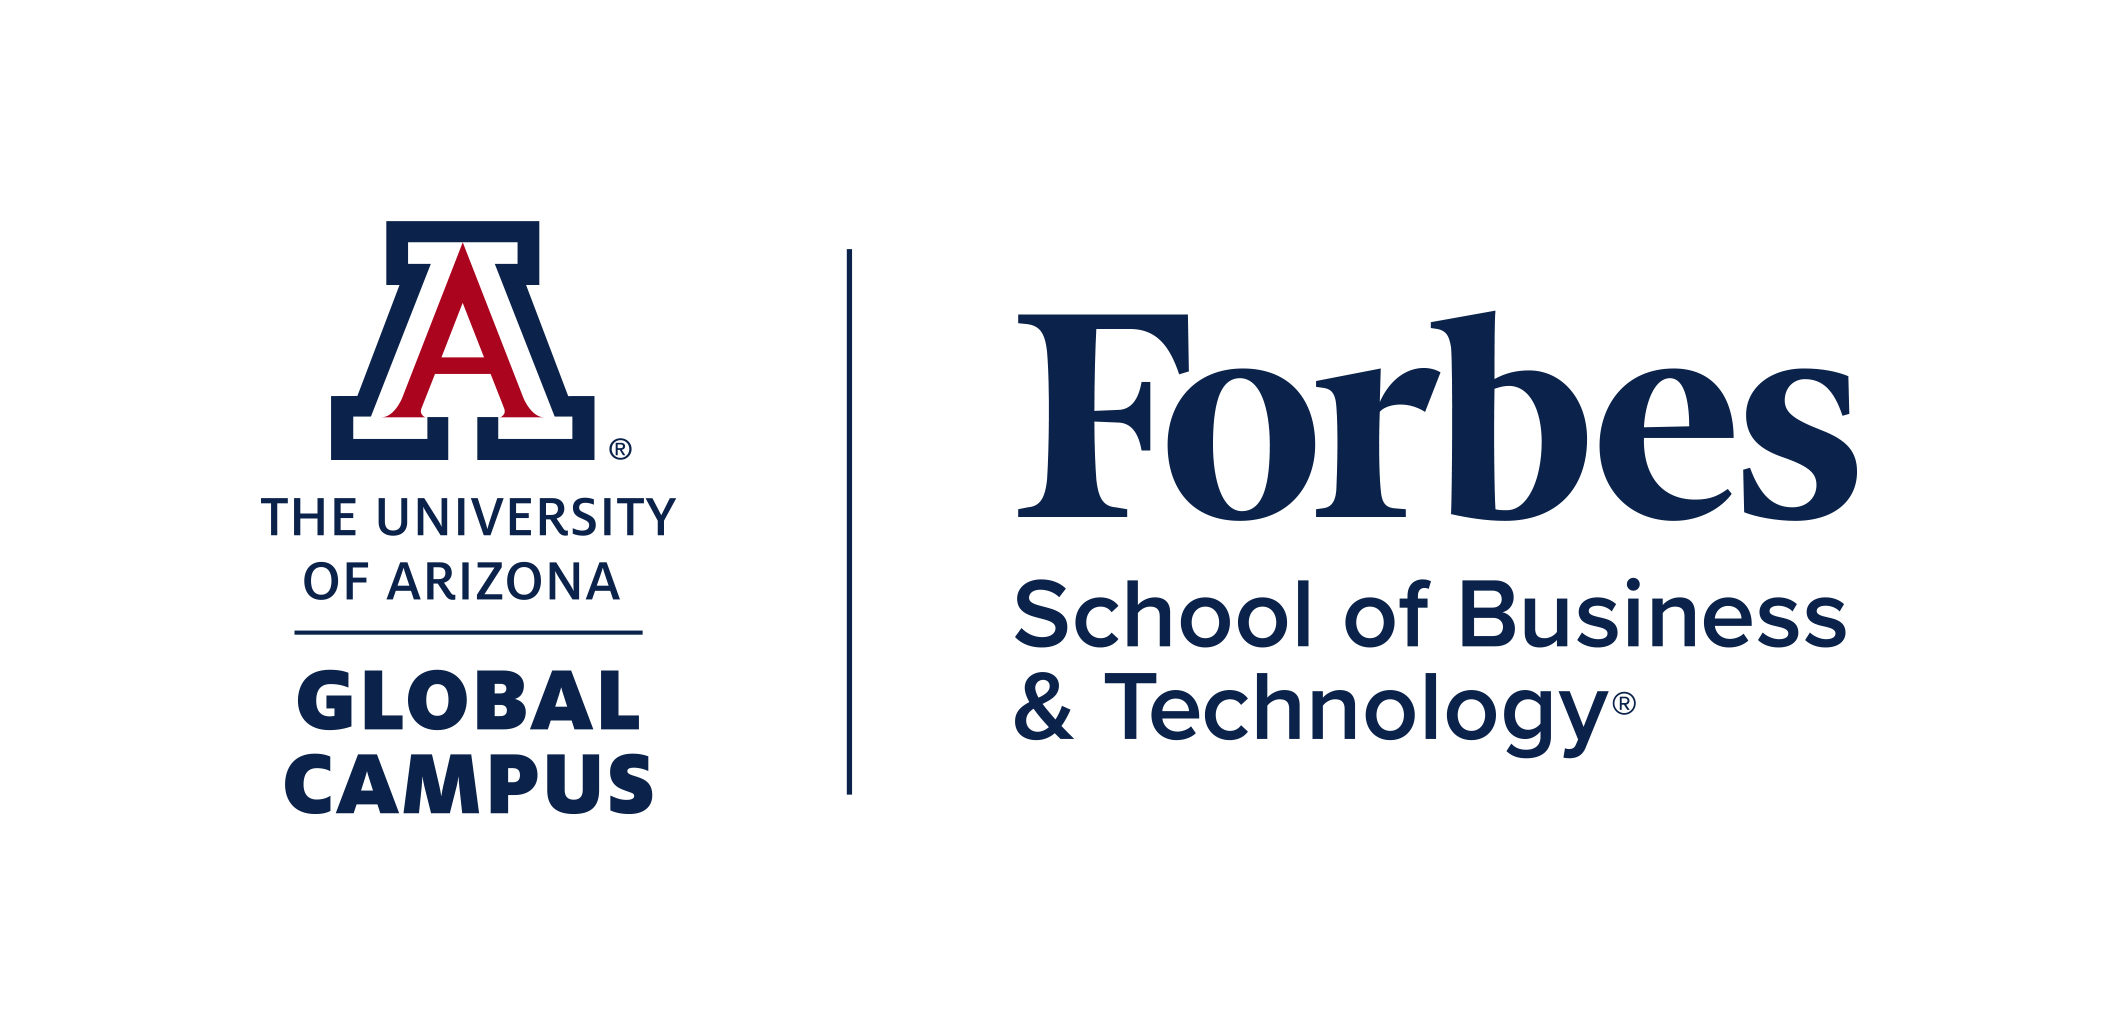 Forbes School of Business and Technology Management